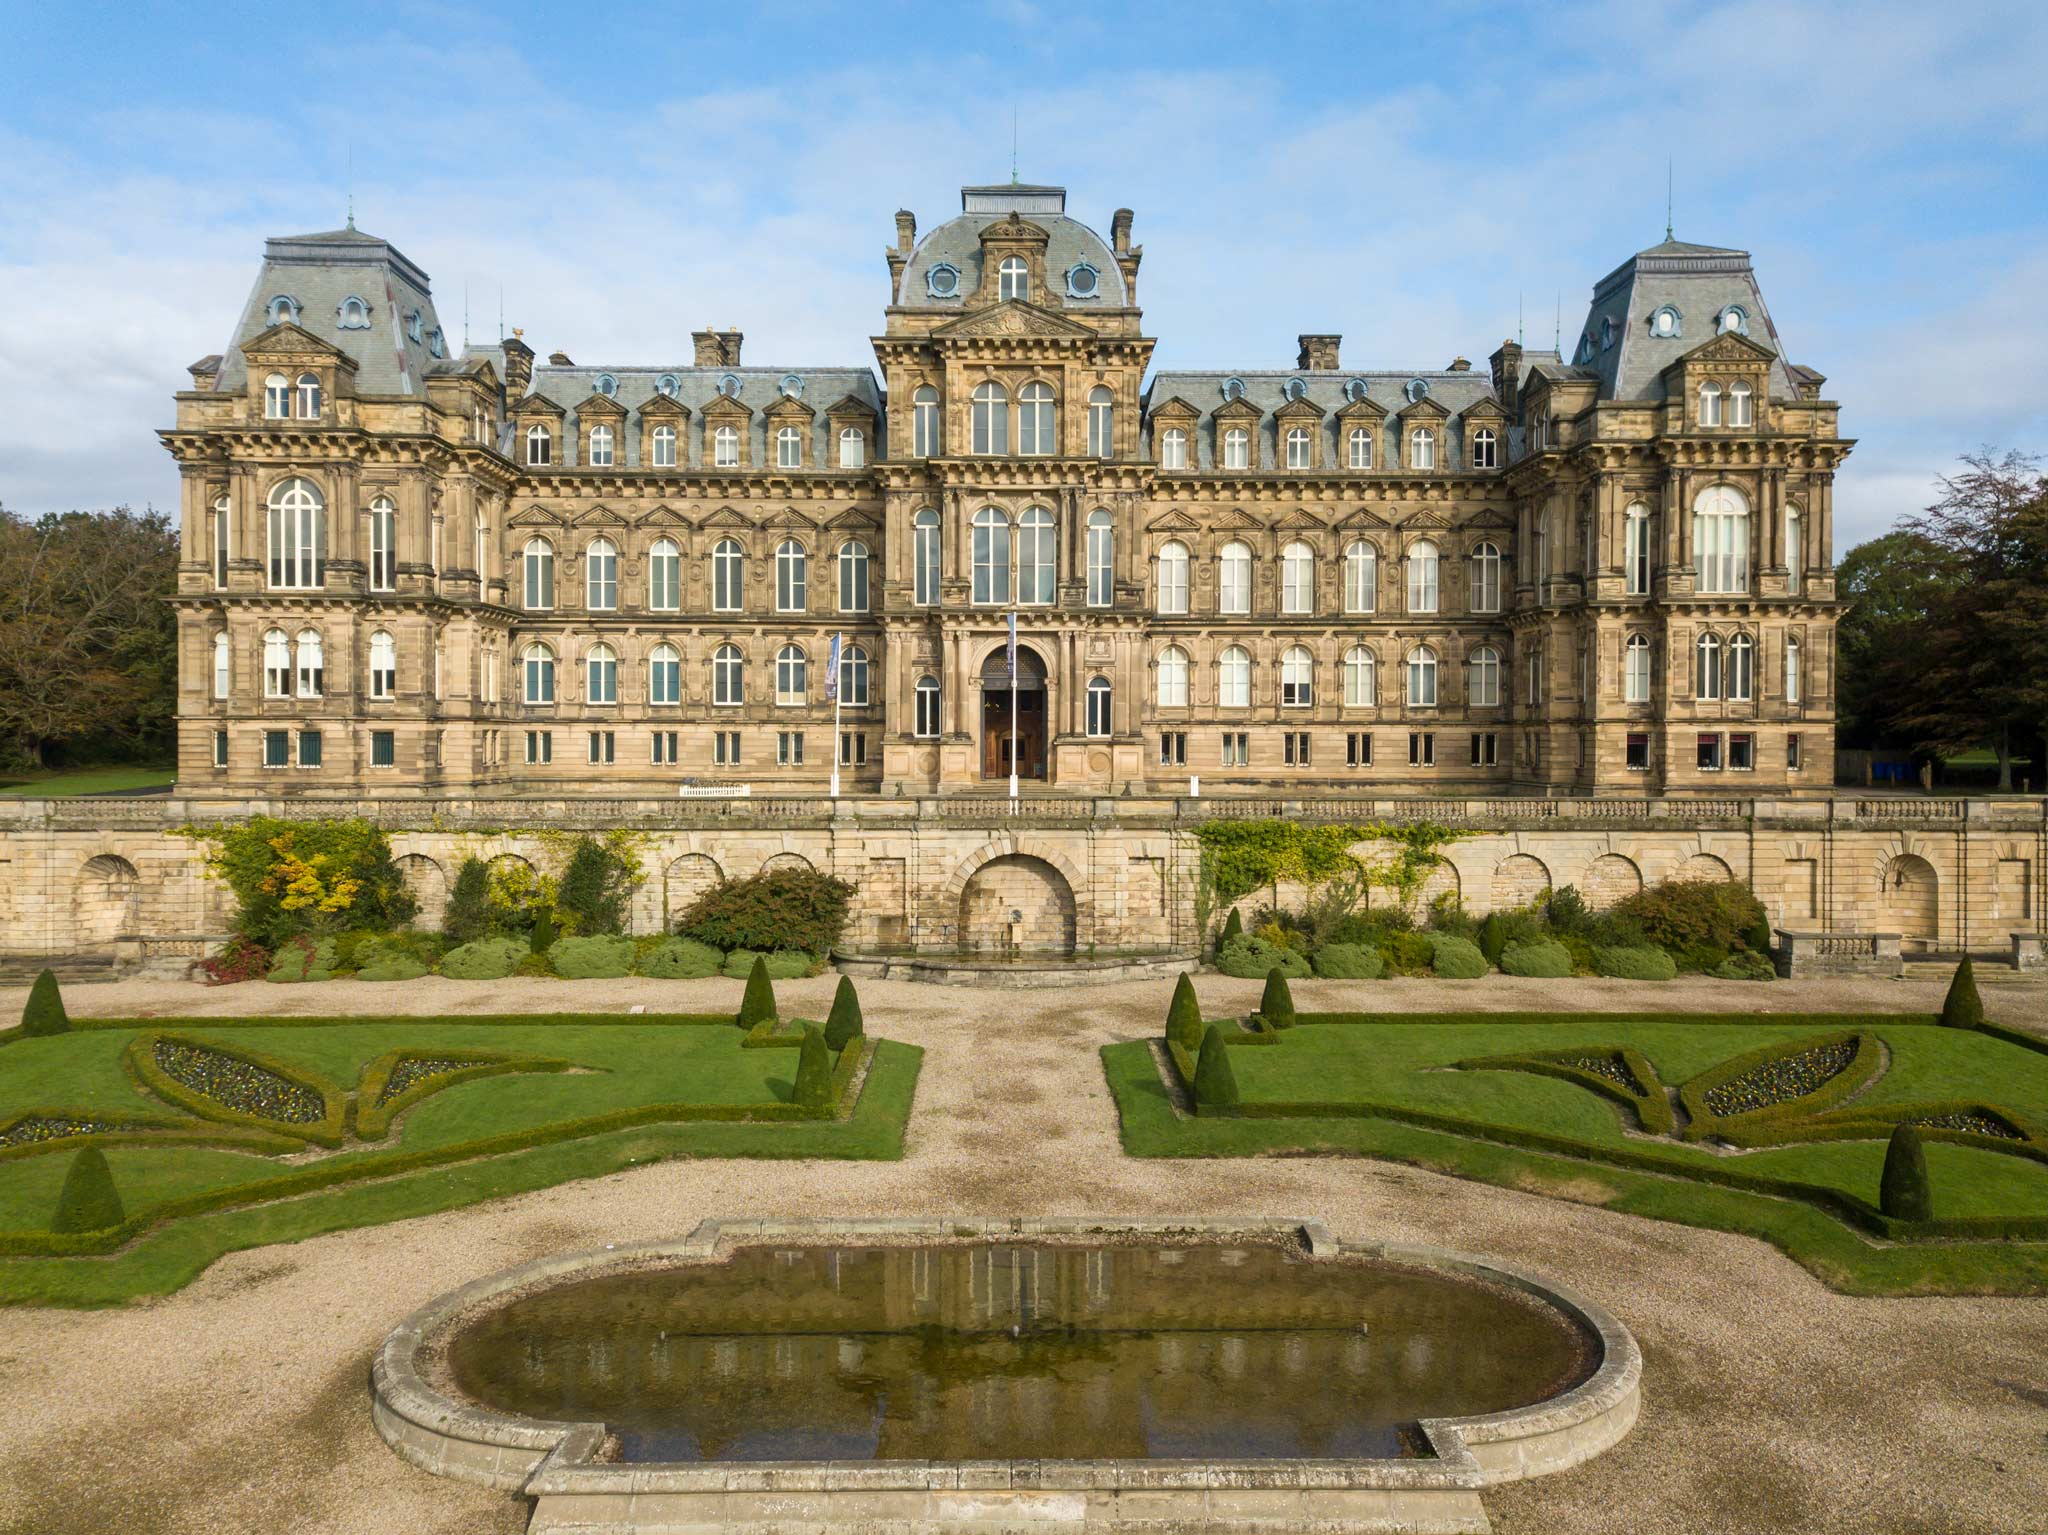 The Bowes Museum in Durham is a large french chateau style building set in manicured gardens